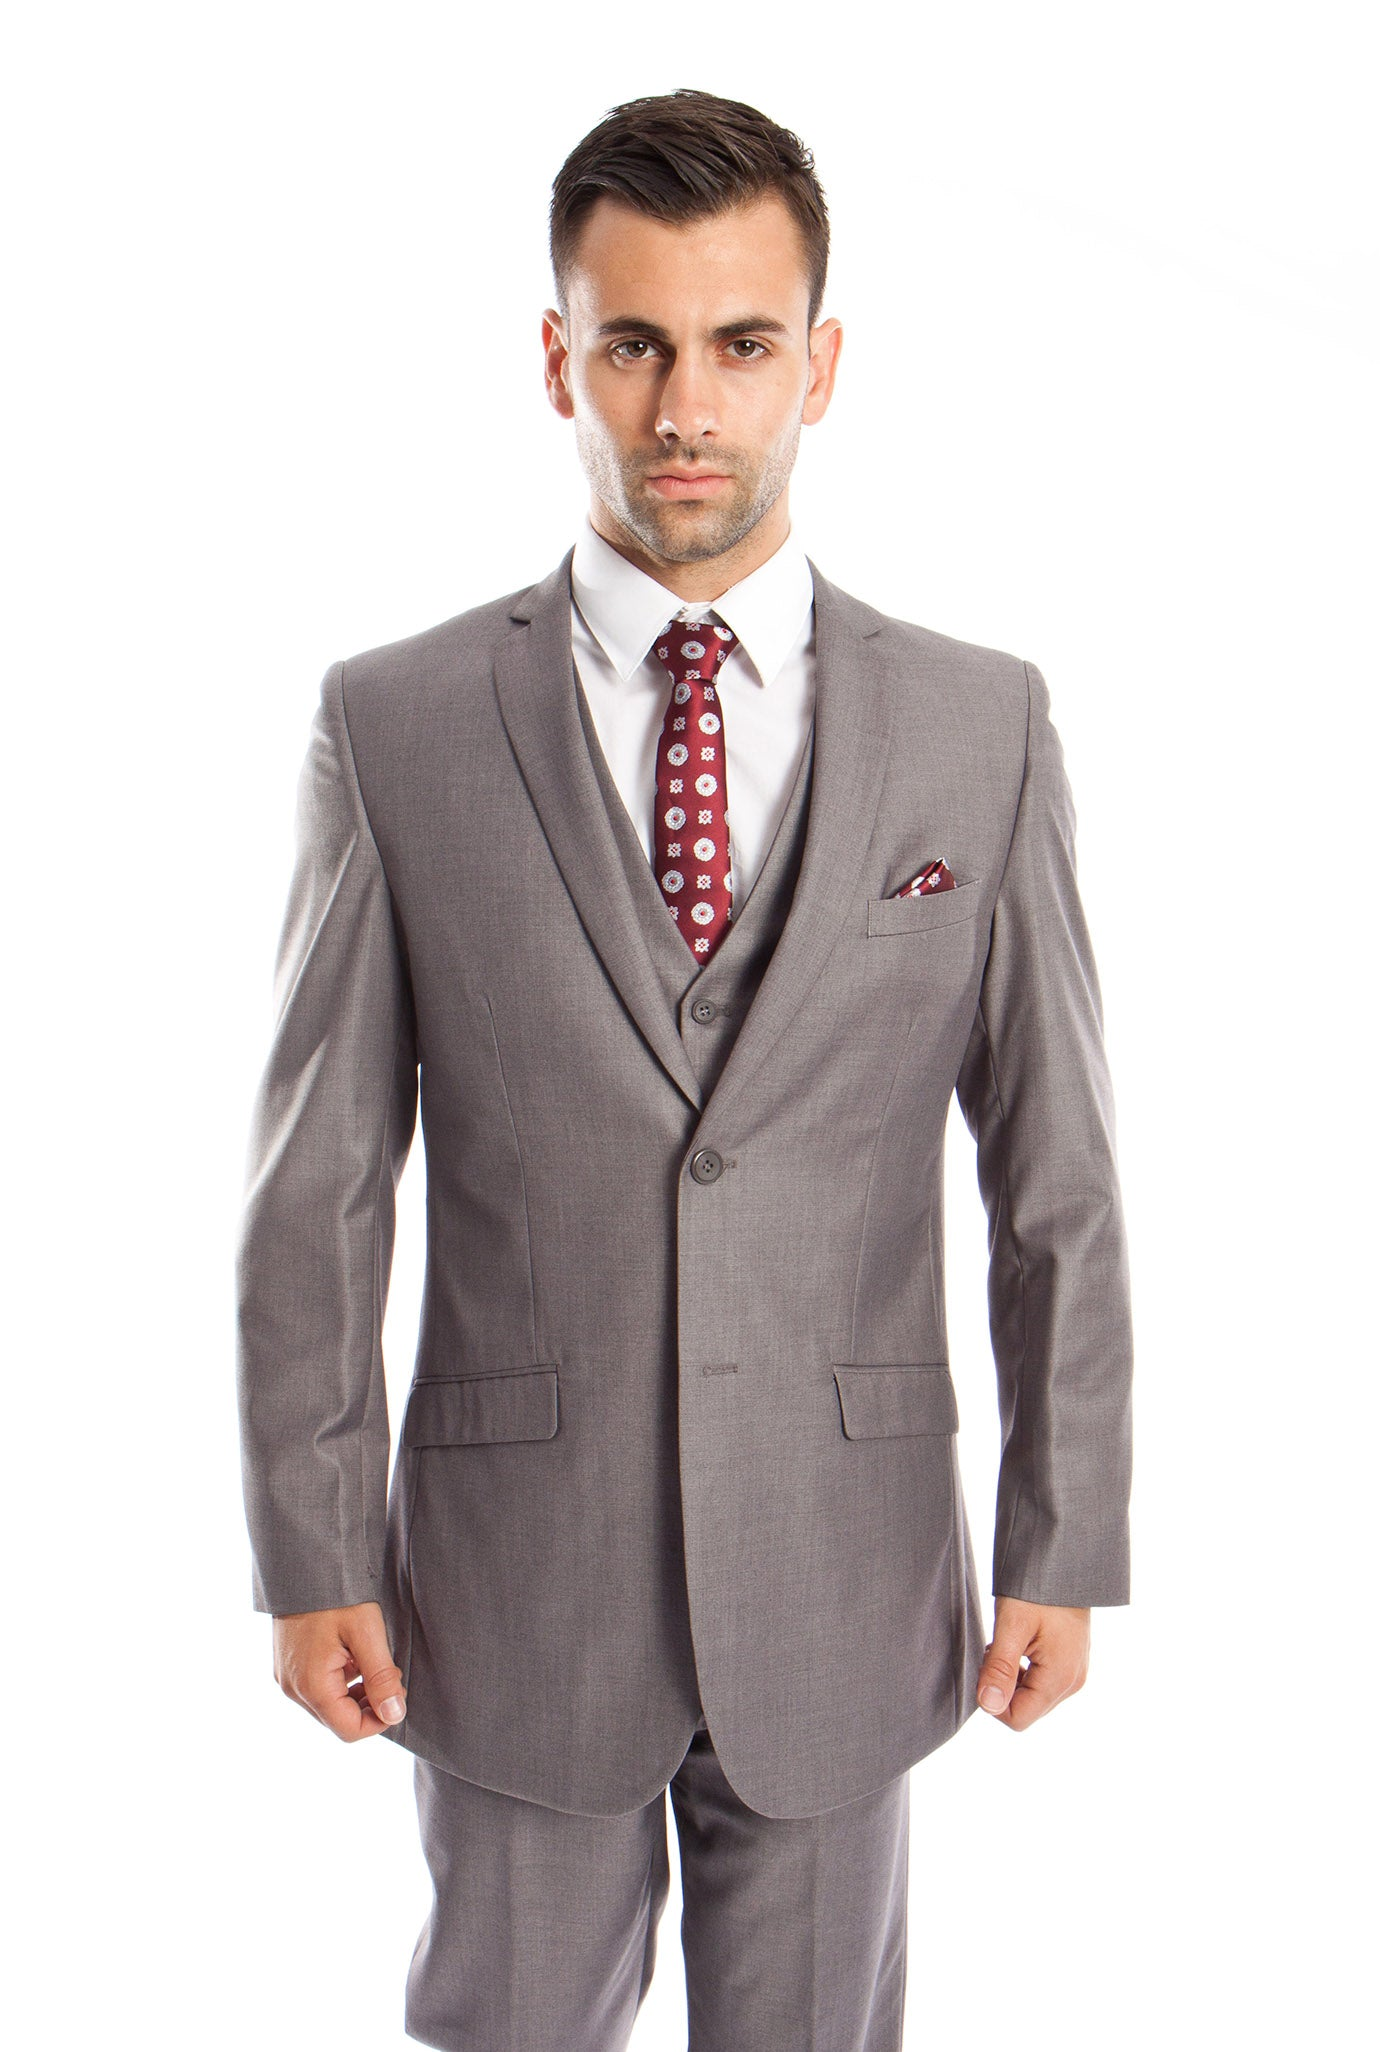 Gray Solid 3-PC Slim Fit Stretch Suits For Men